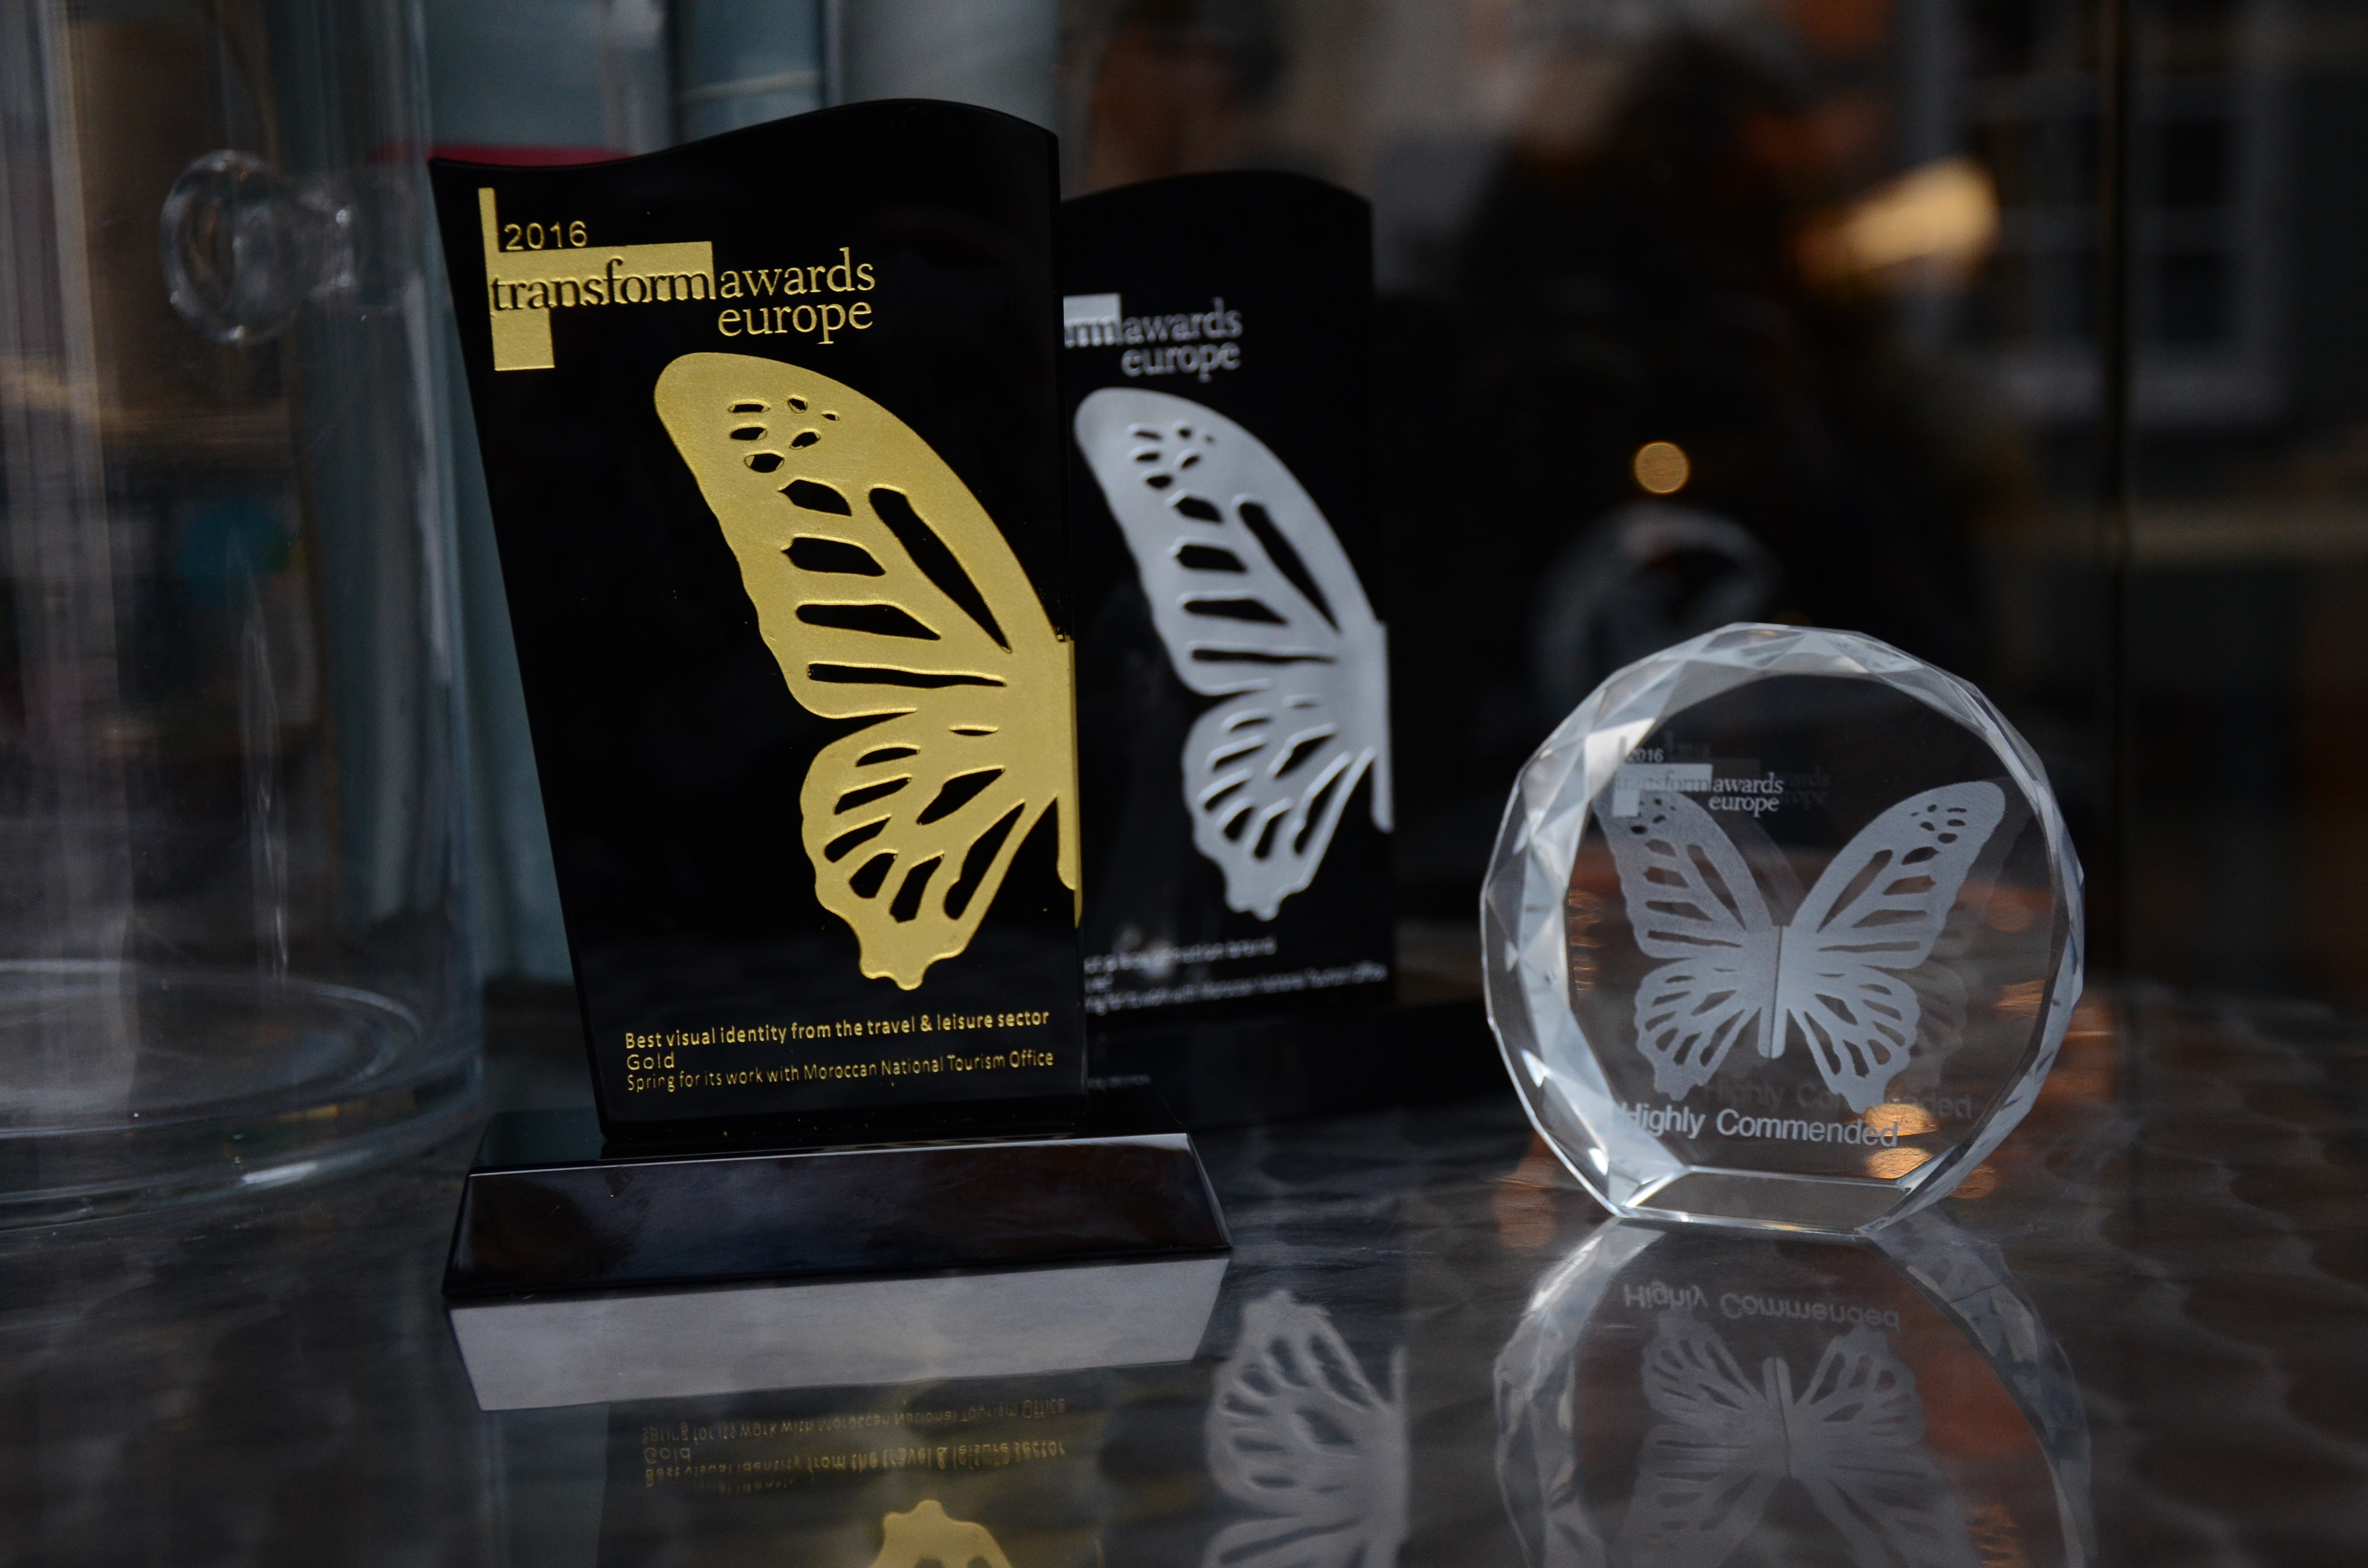 Three awards for the MuchMorocco campaign at the 2016 Transform Awards